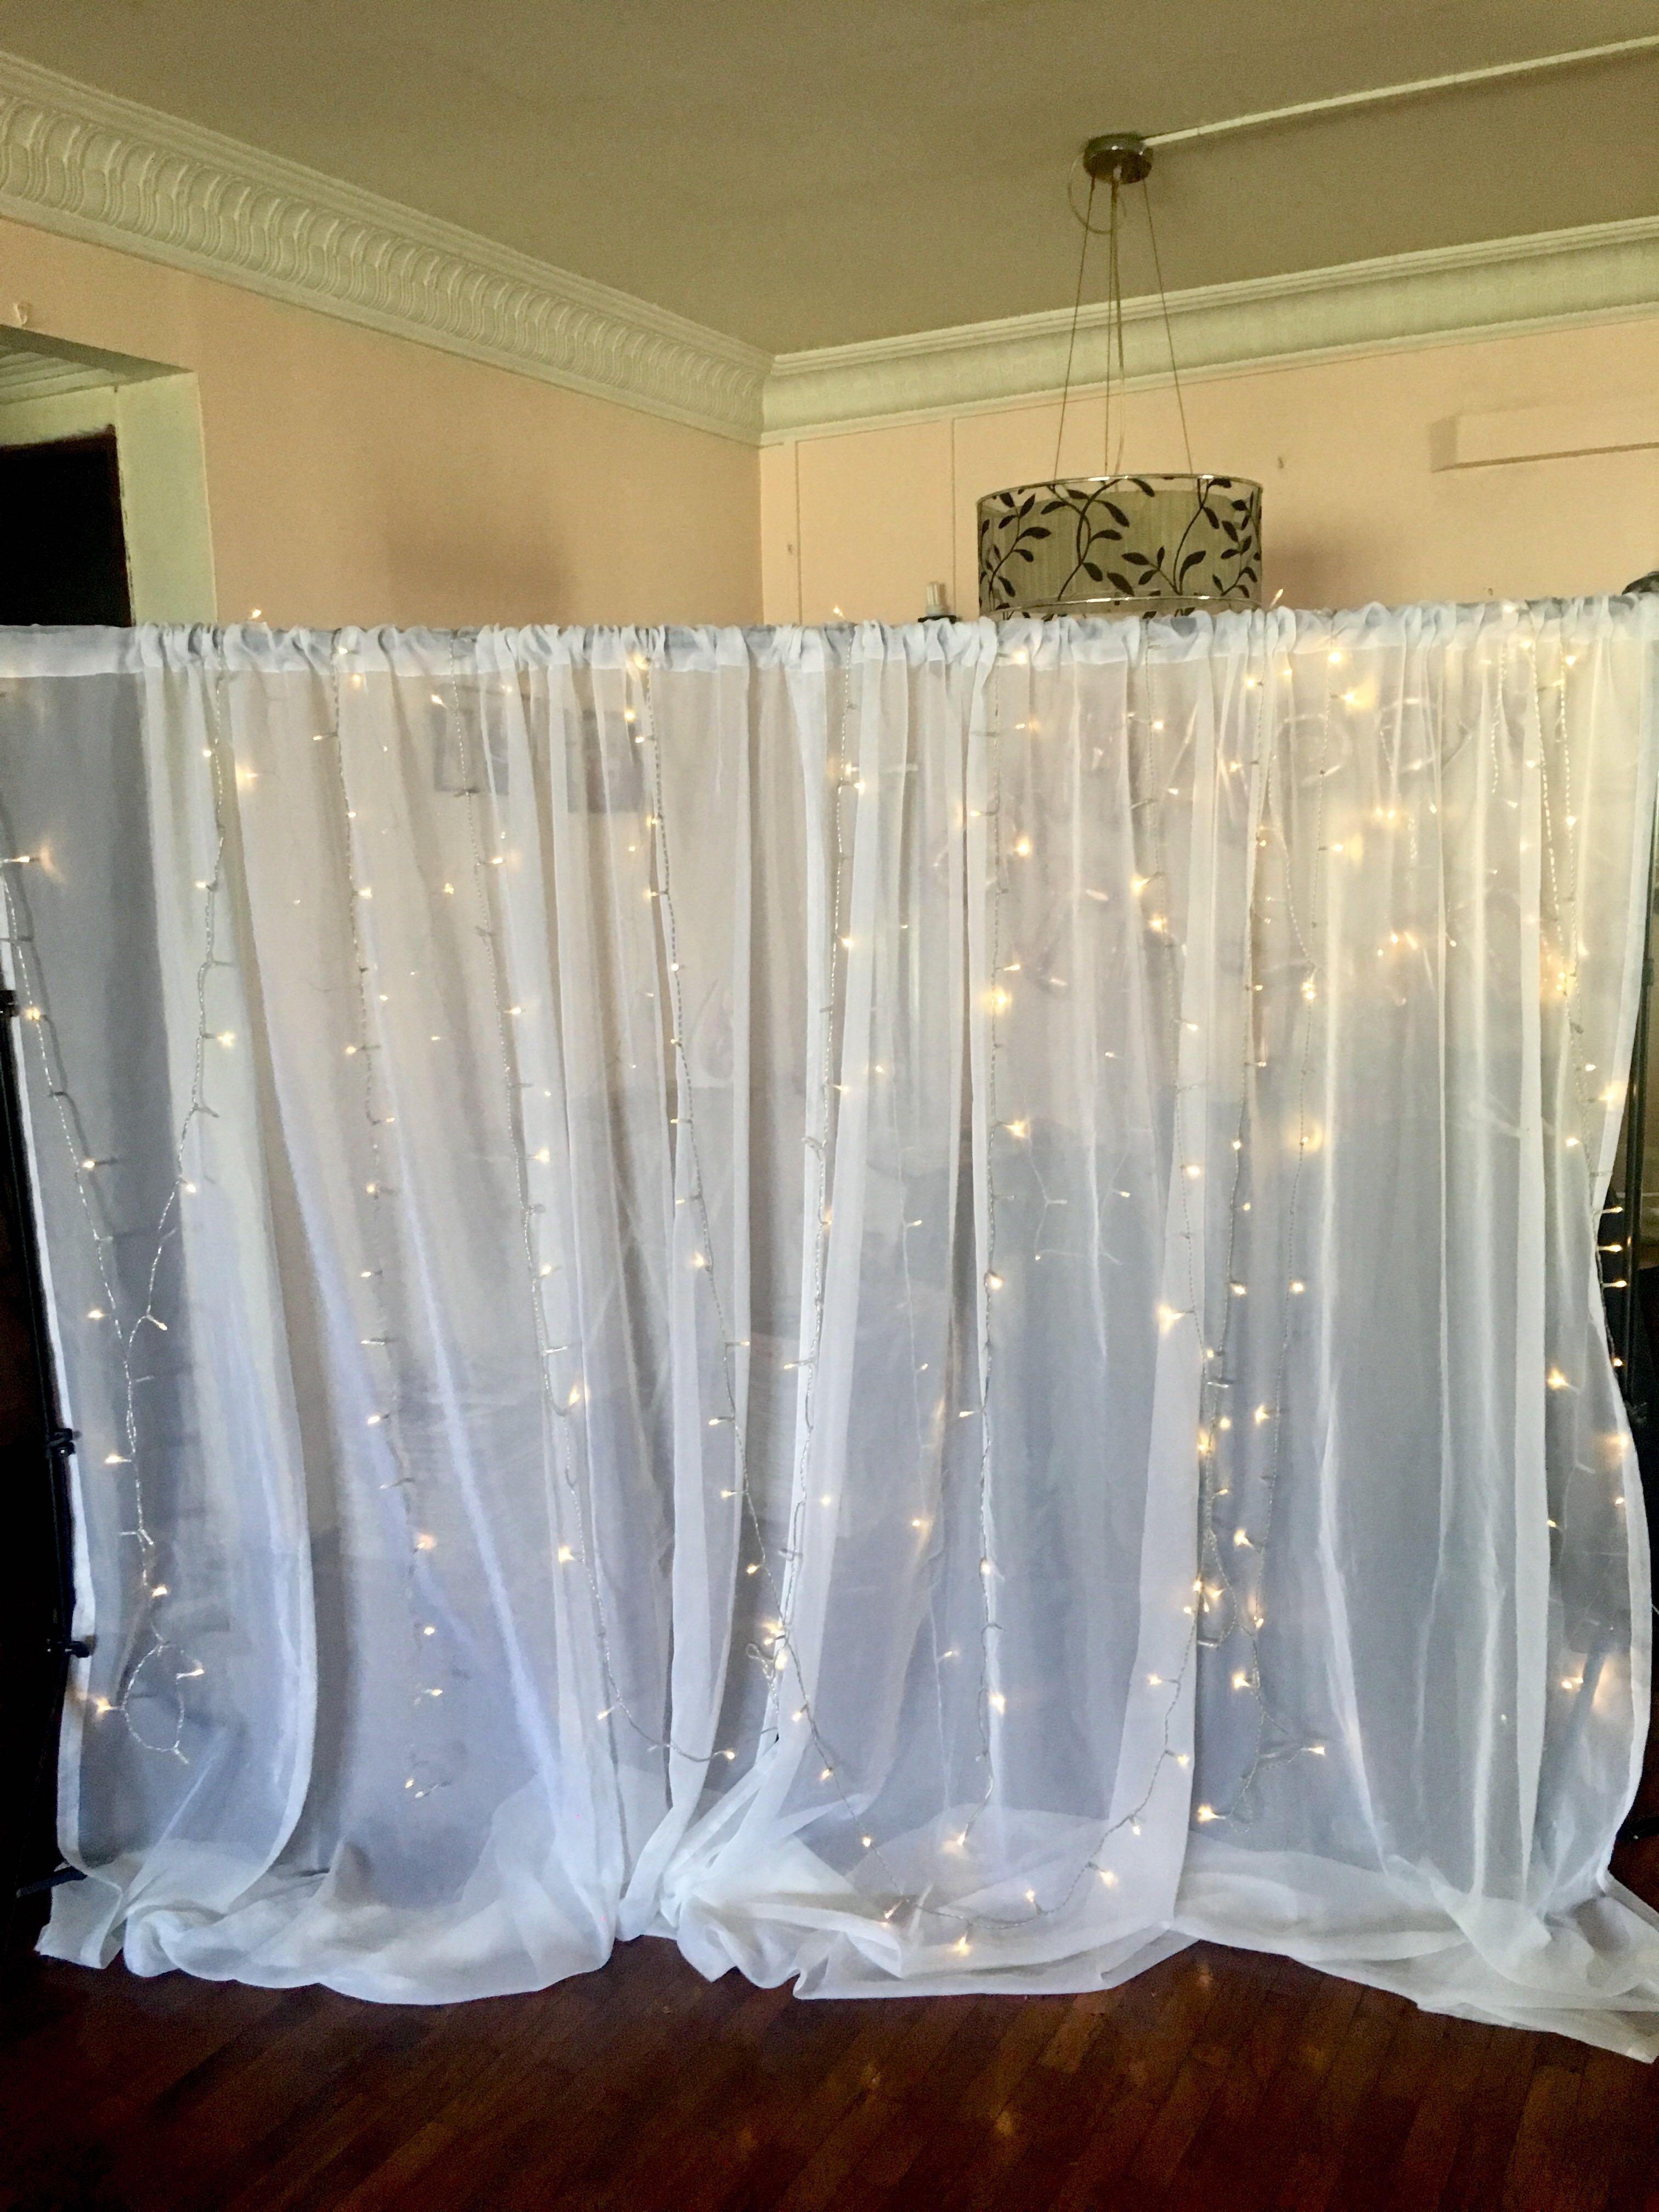 Rental Backdrop With Semi Sheer Curtains Design Craft Others On Carousell